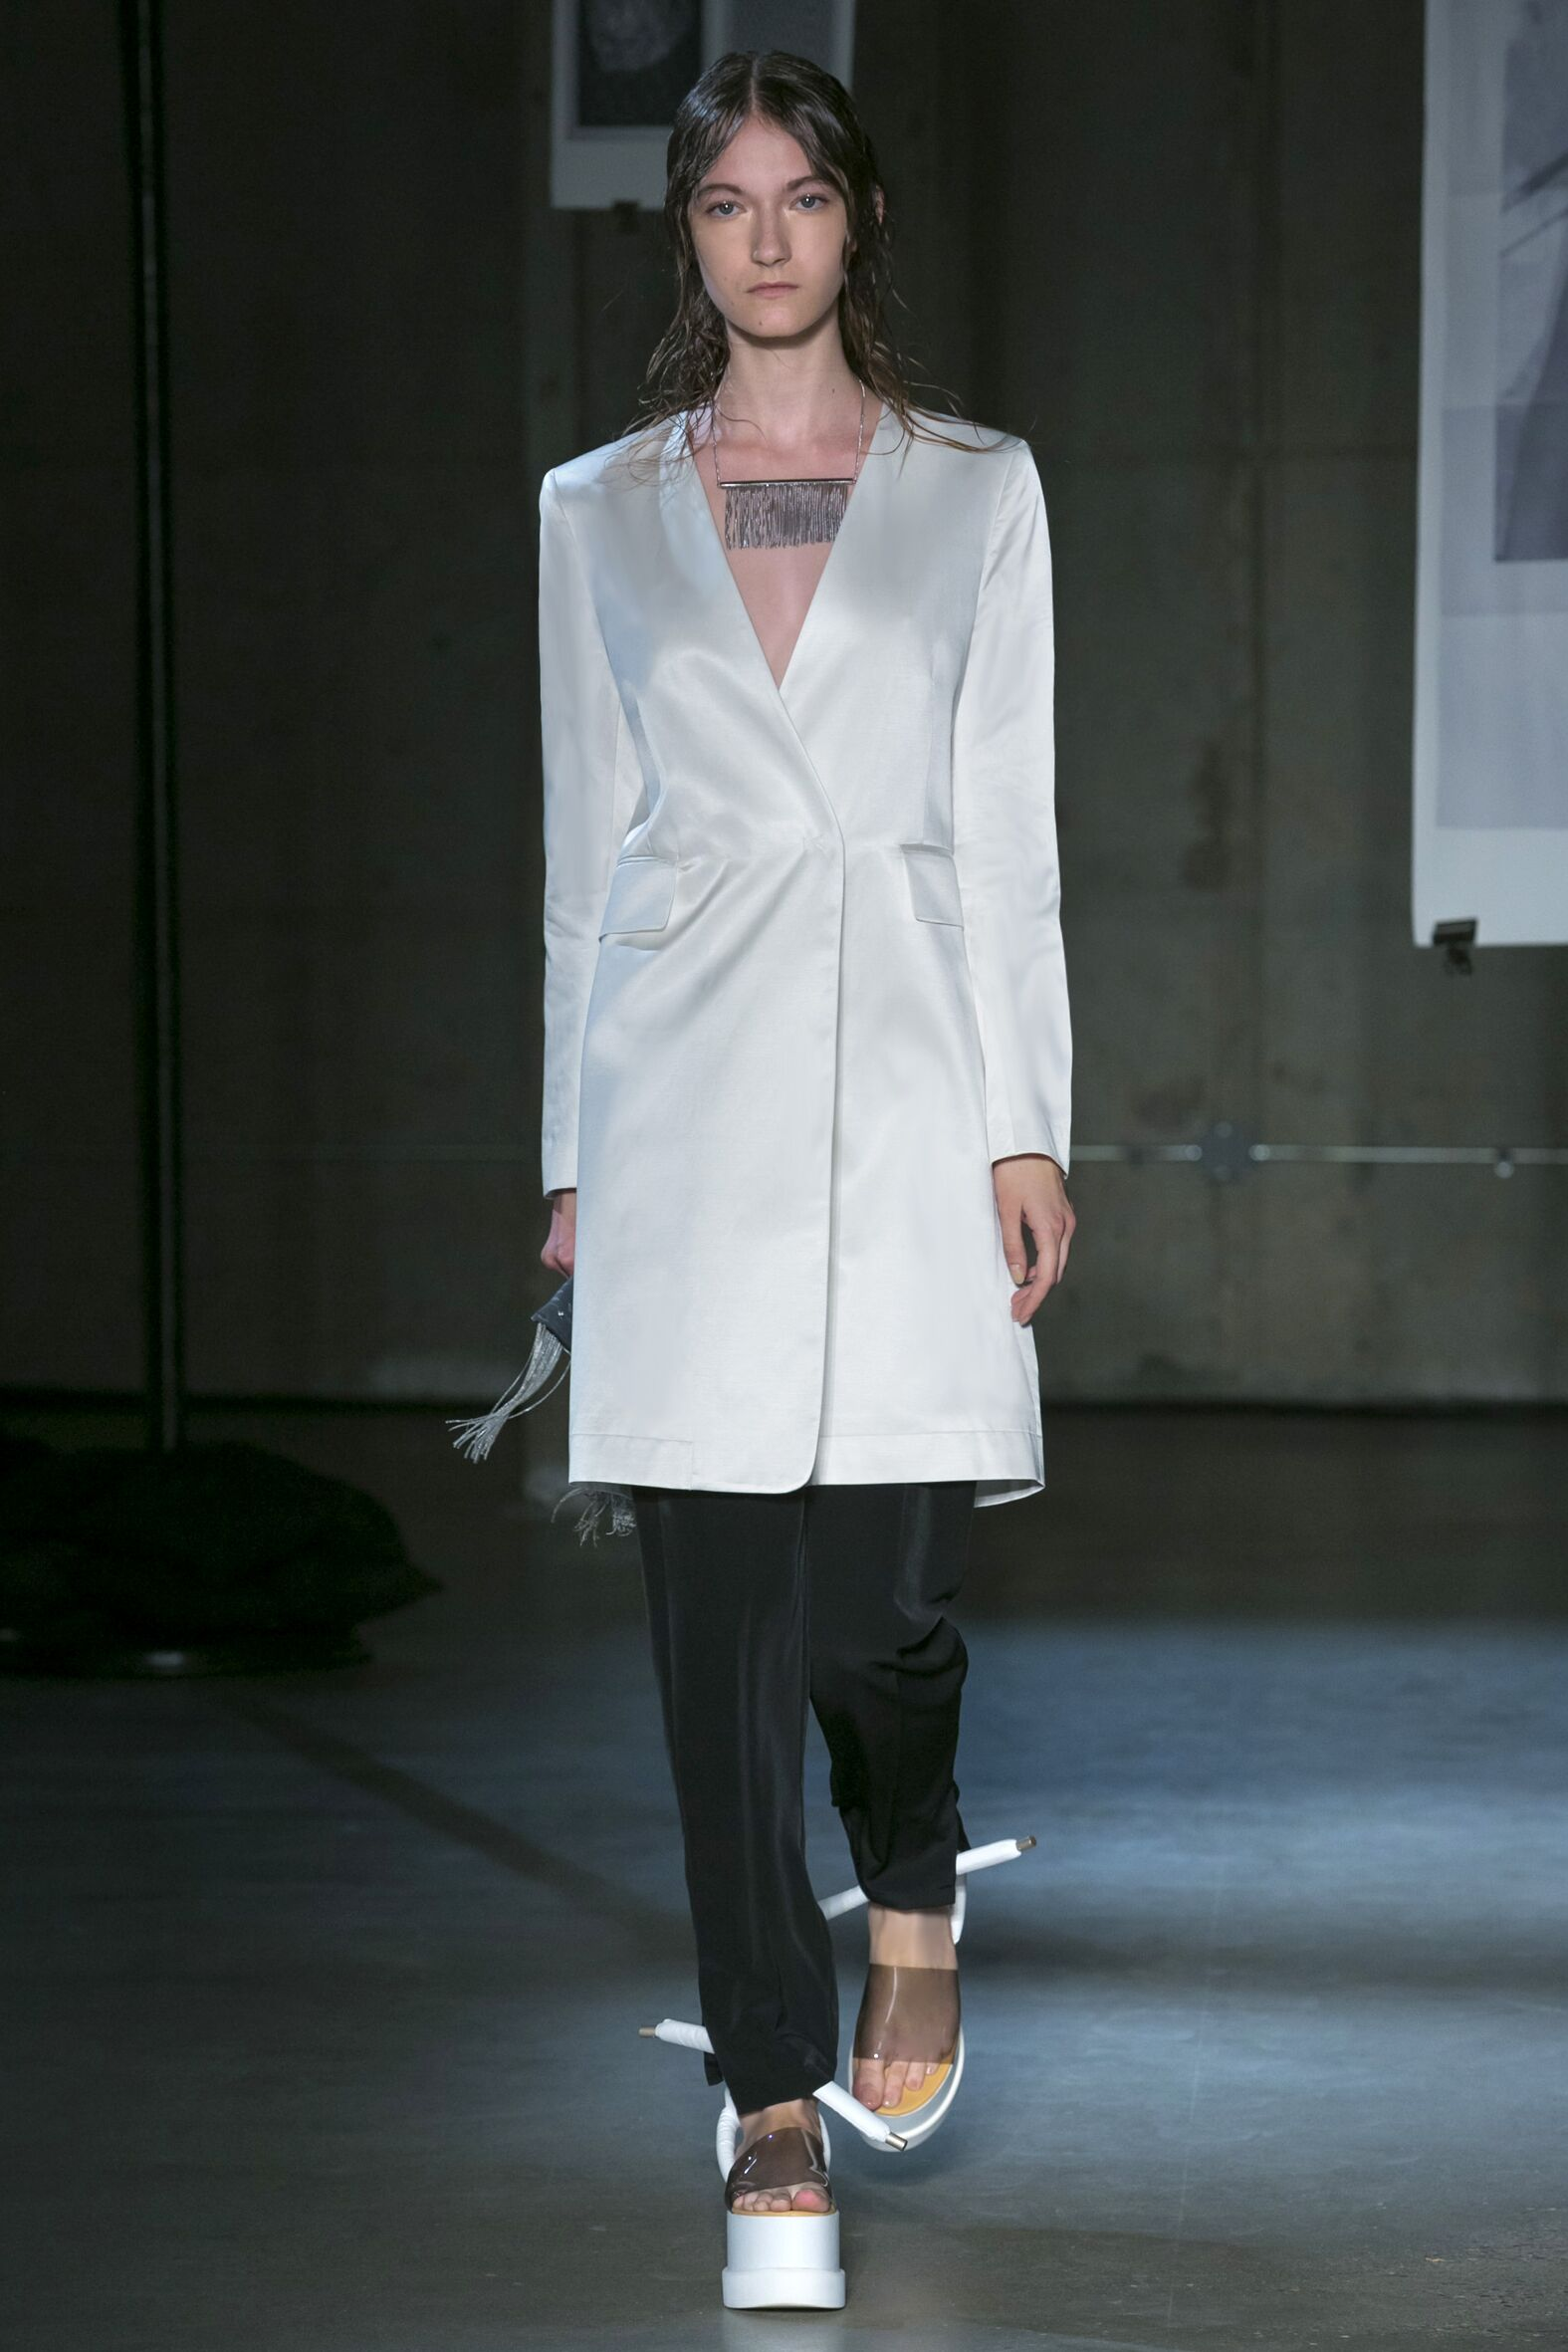 MM6 Spring 2015 Catwalk